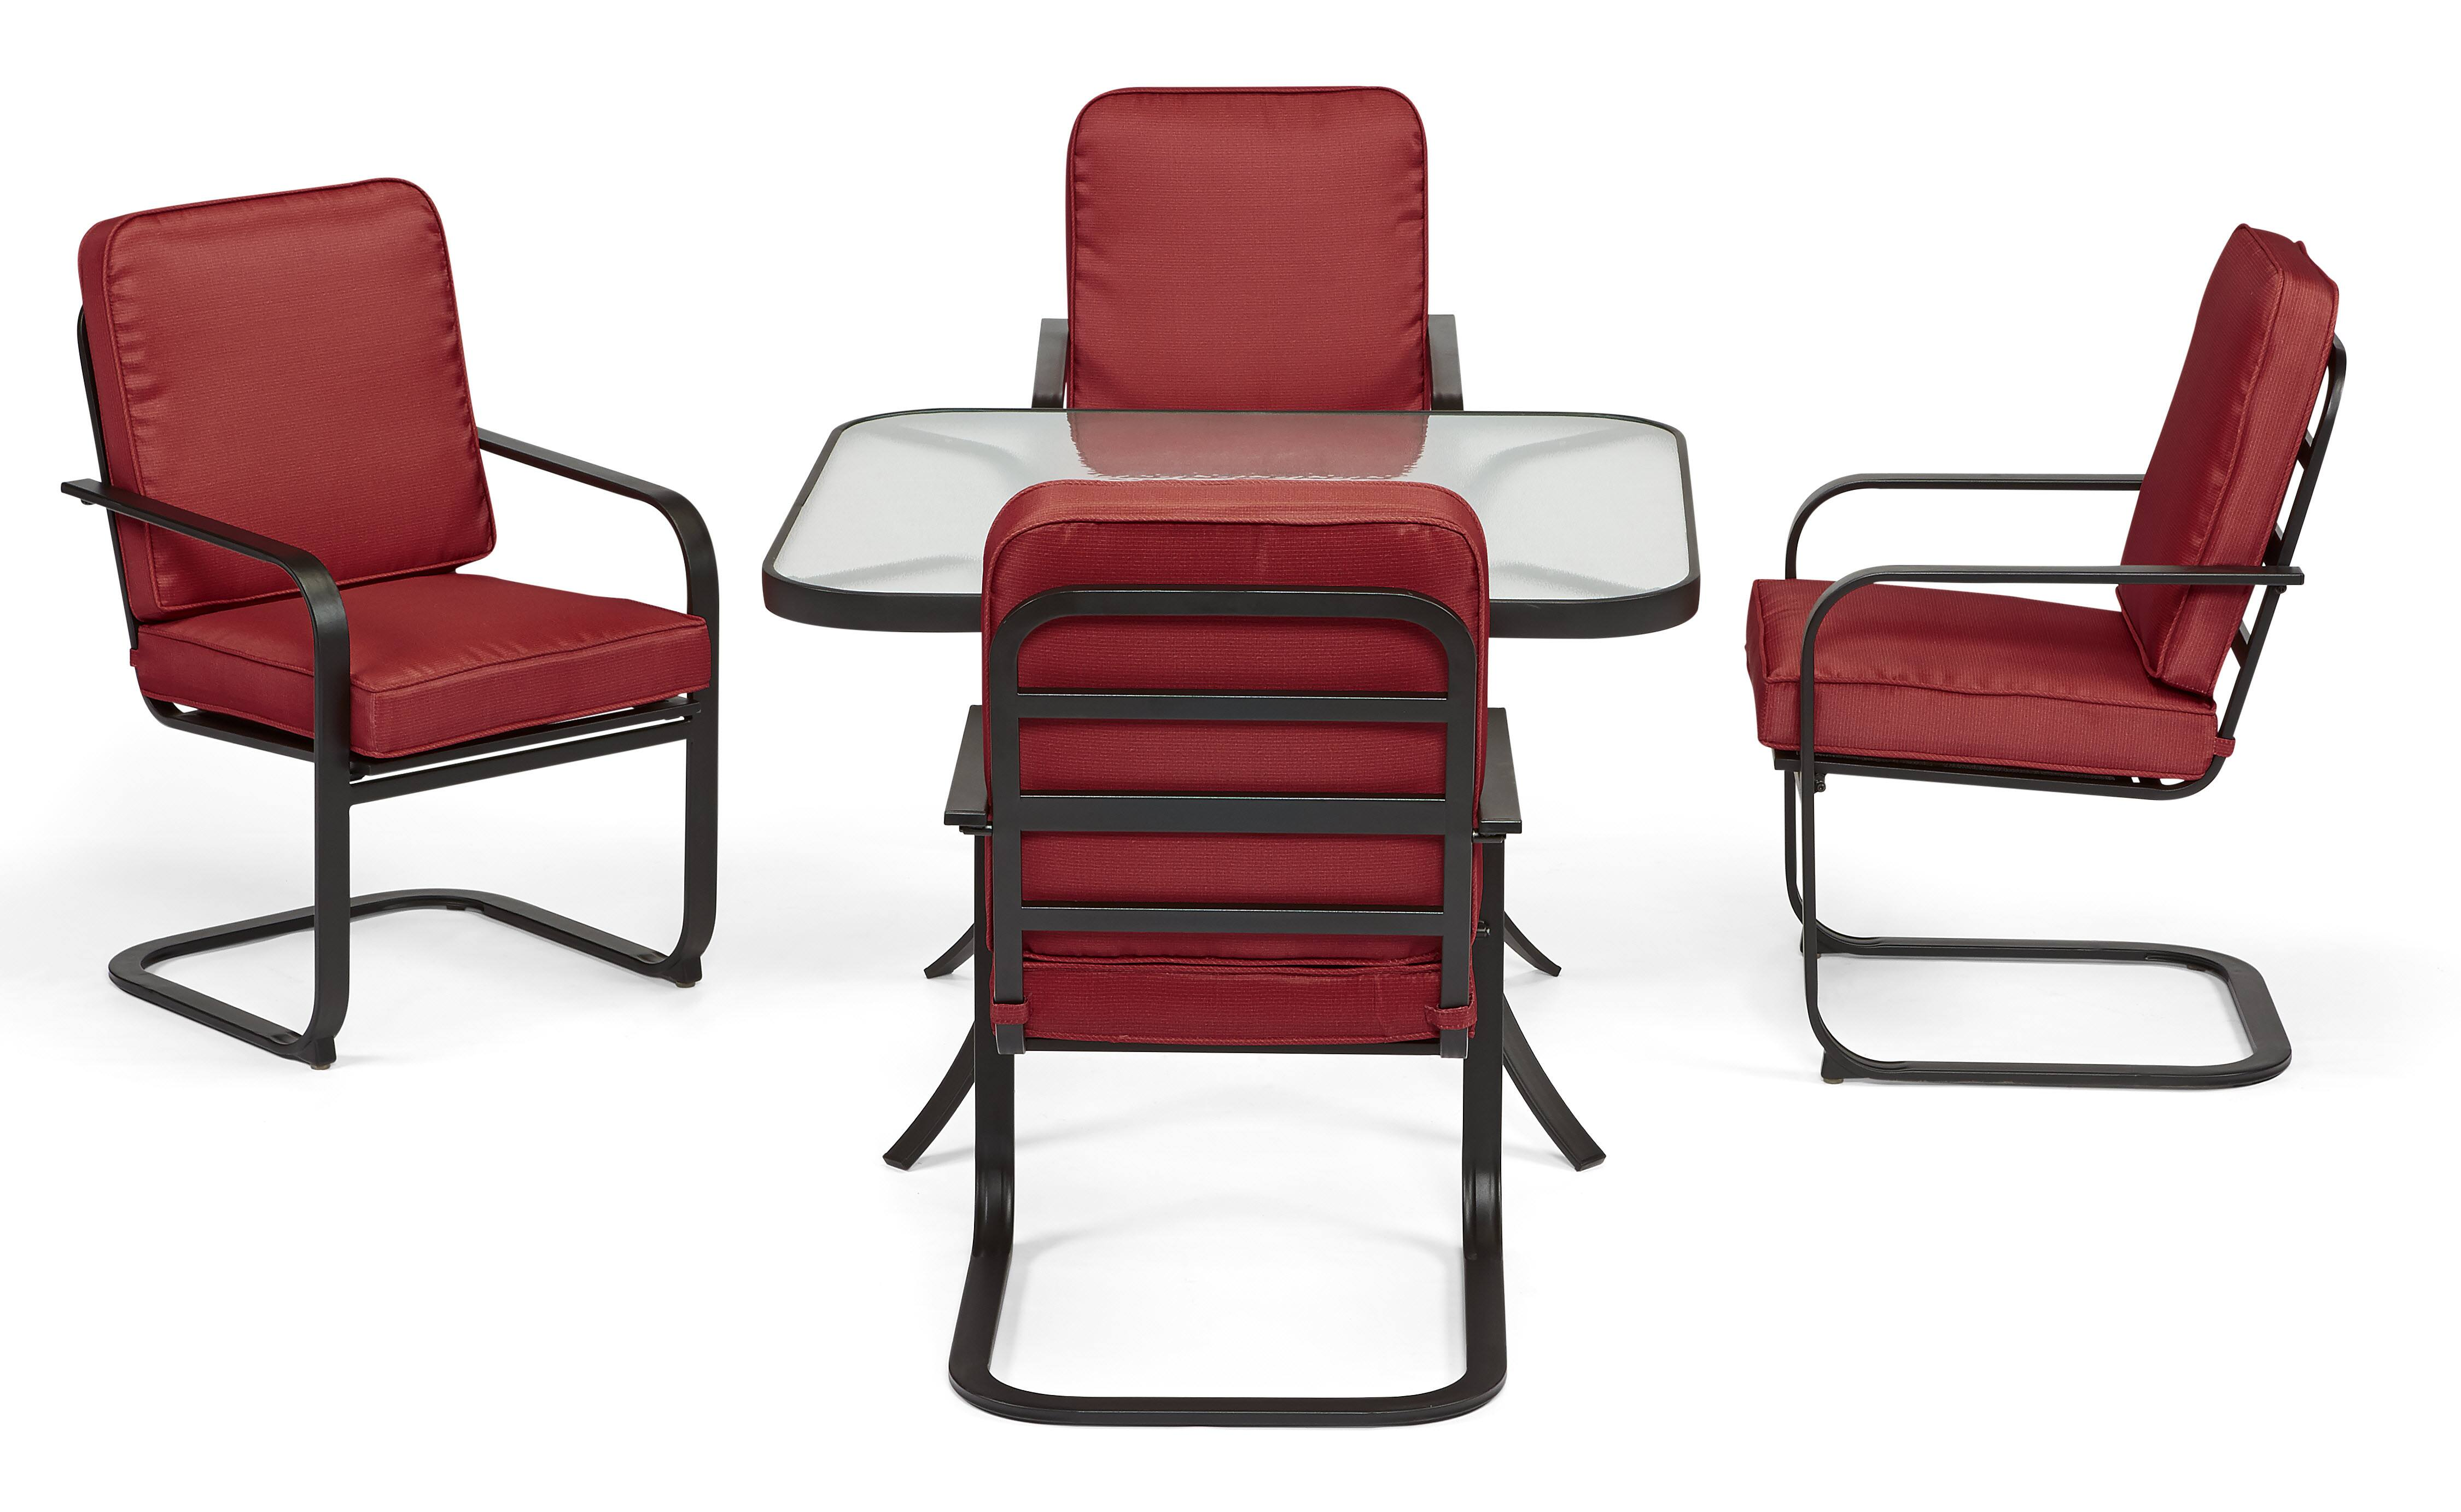 Essential Garden Bisbee Set of 4 Dining Chairs Red $189 00 at